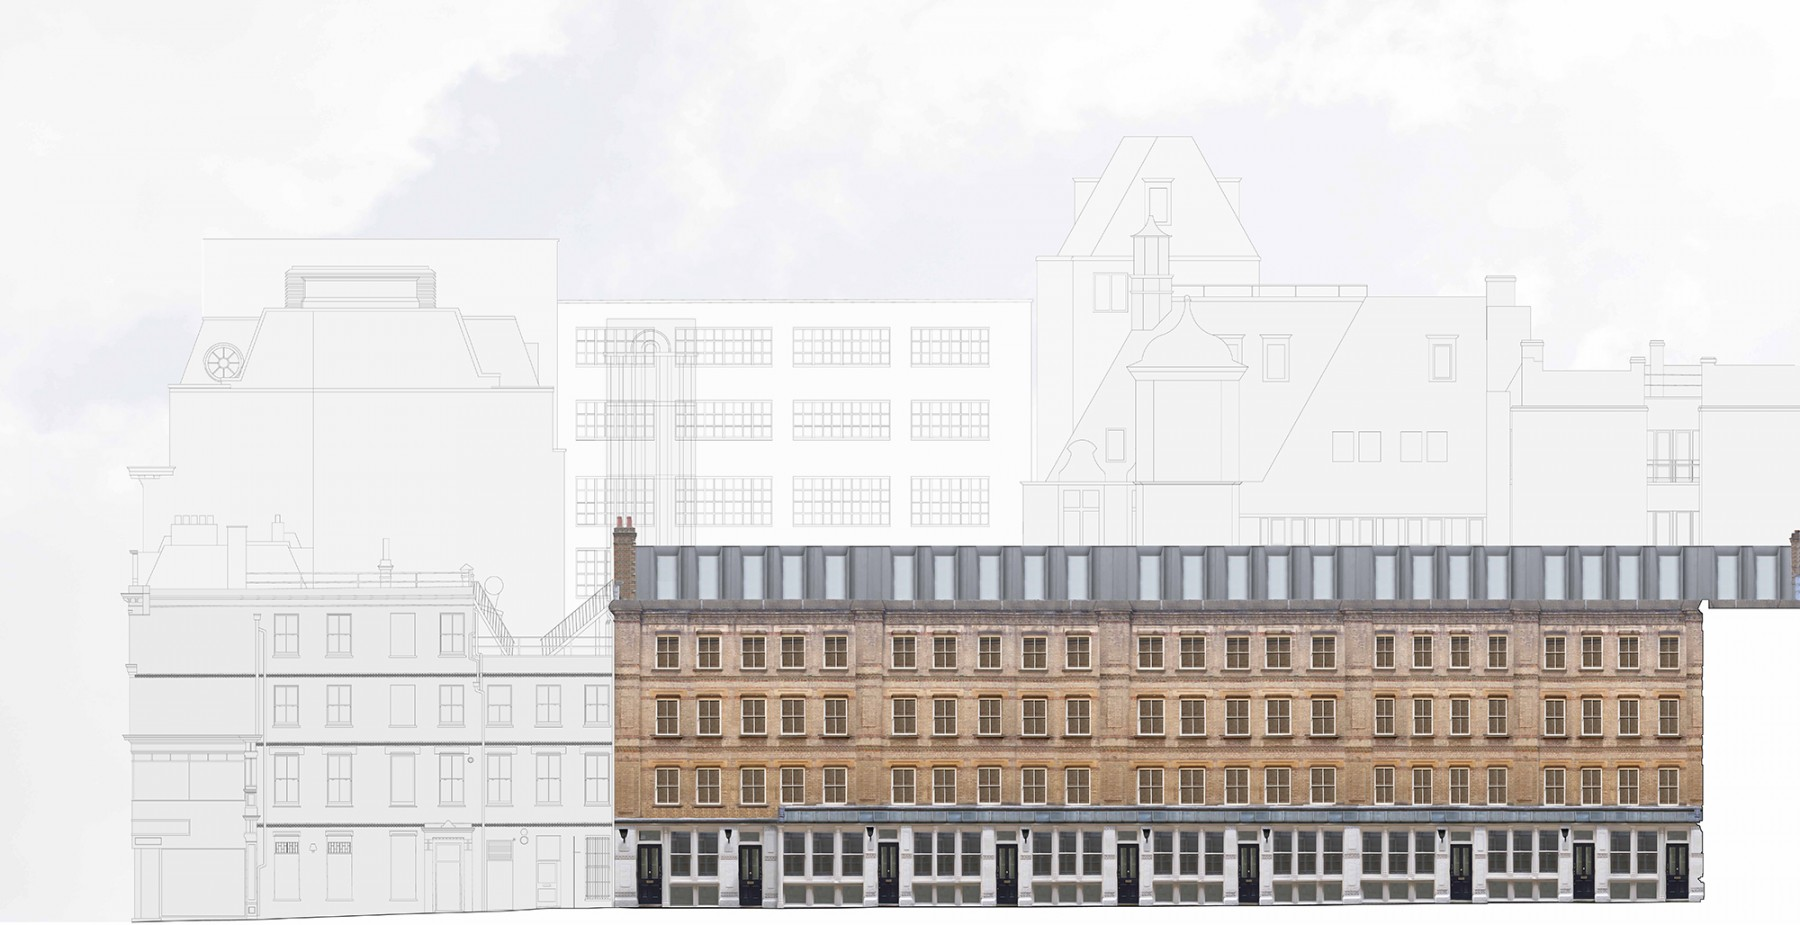 Dyers-Buildings-Private-Gated-Victorian-luxury-apartment-scheme-Residential-Development-Holborn-London-Jamie-Fobert-Architects-east-elevation-2